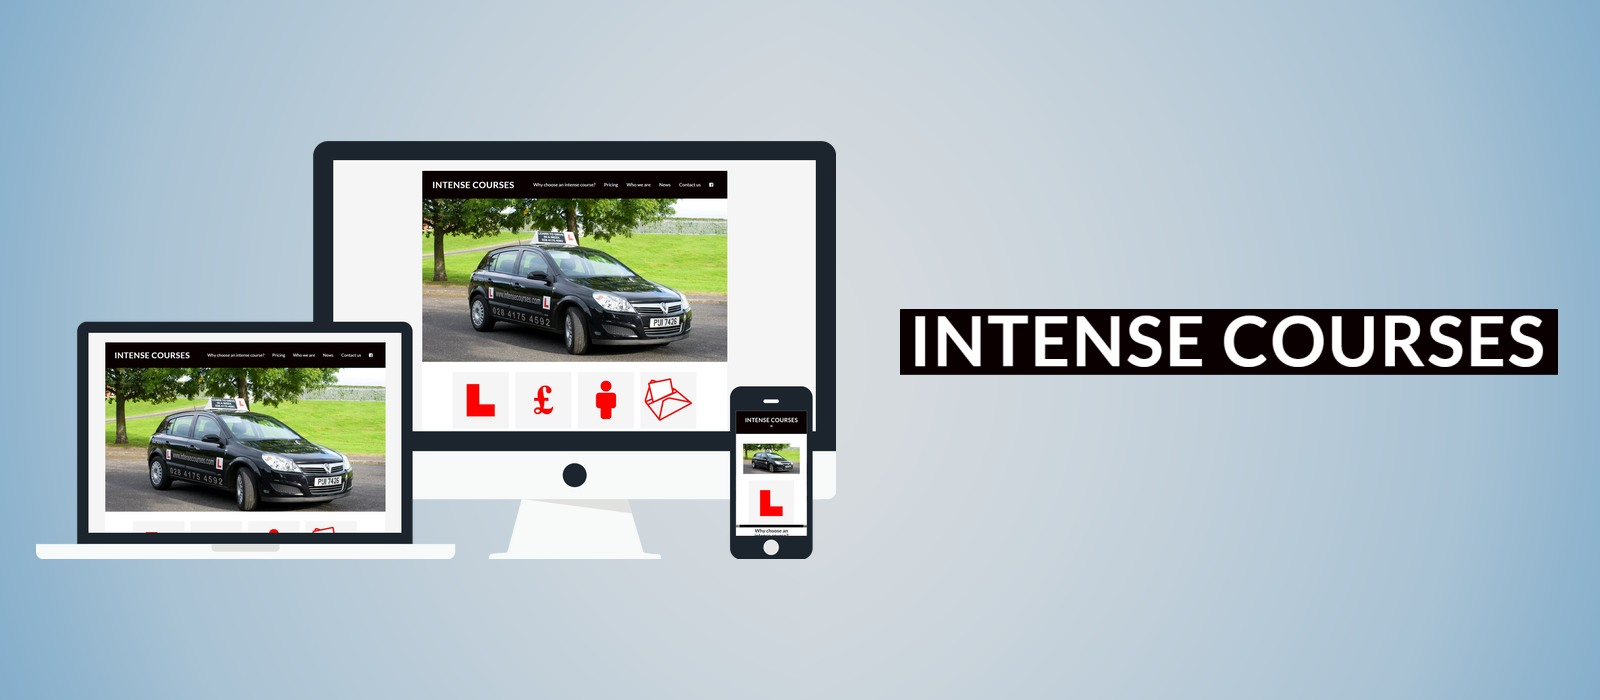 Intense Courses Featured Image